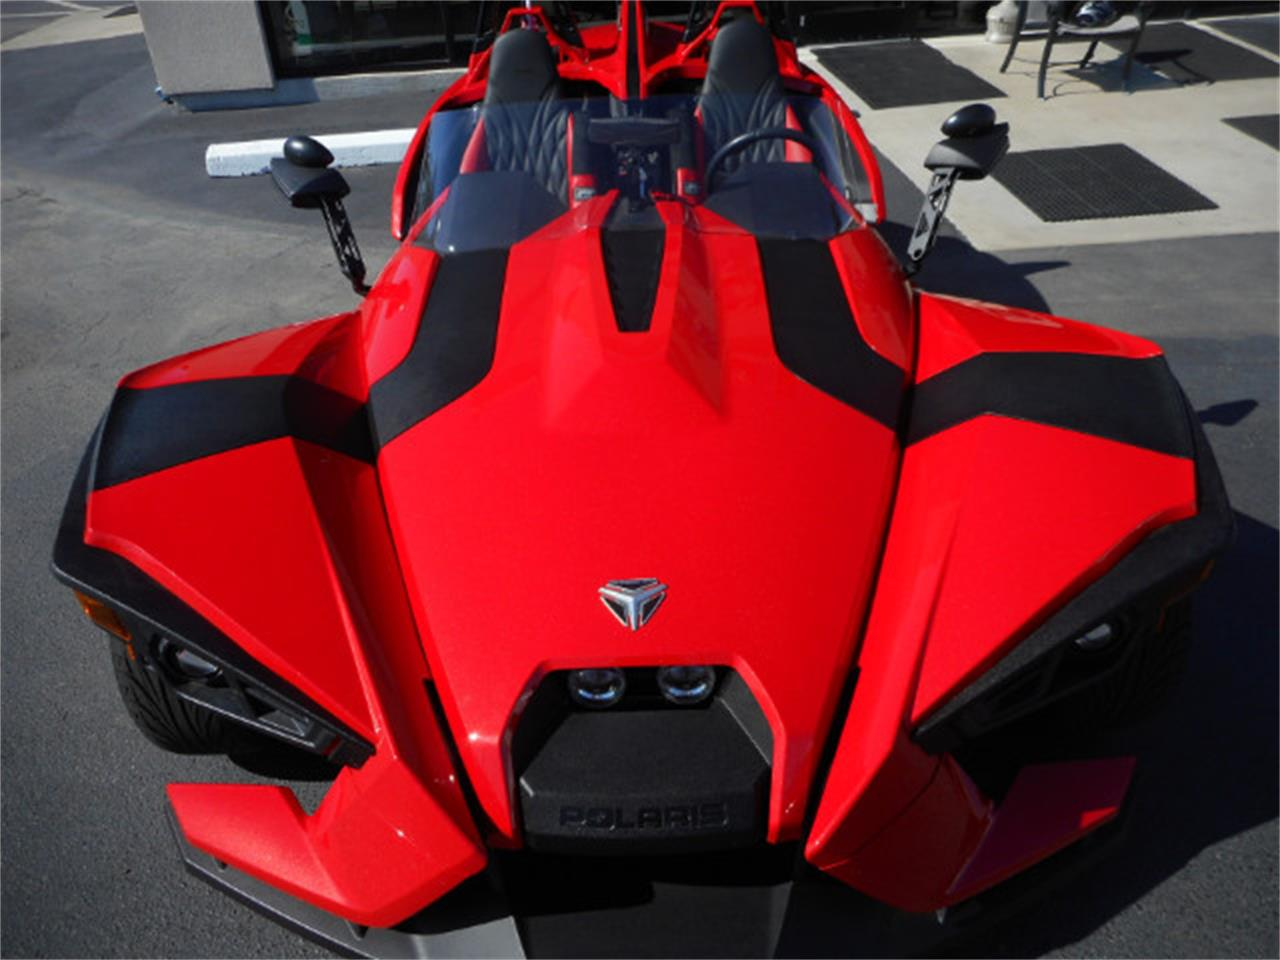 Large Picture of '15 Polaris Slingshot - $18,999.00 - JOAT